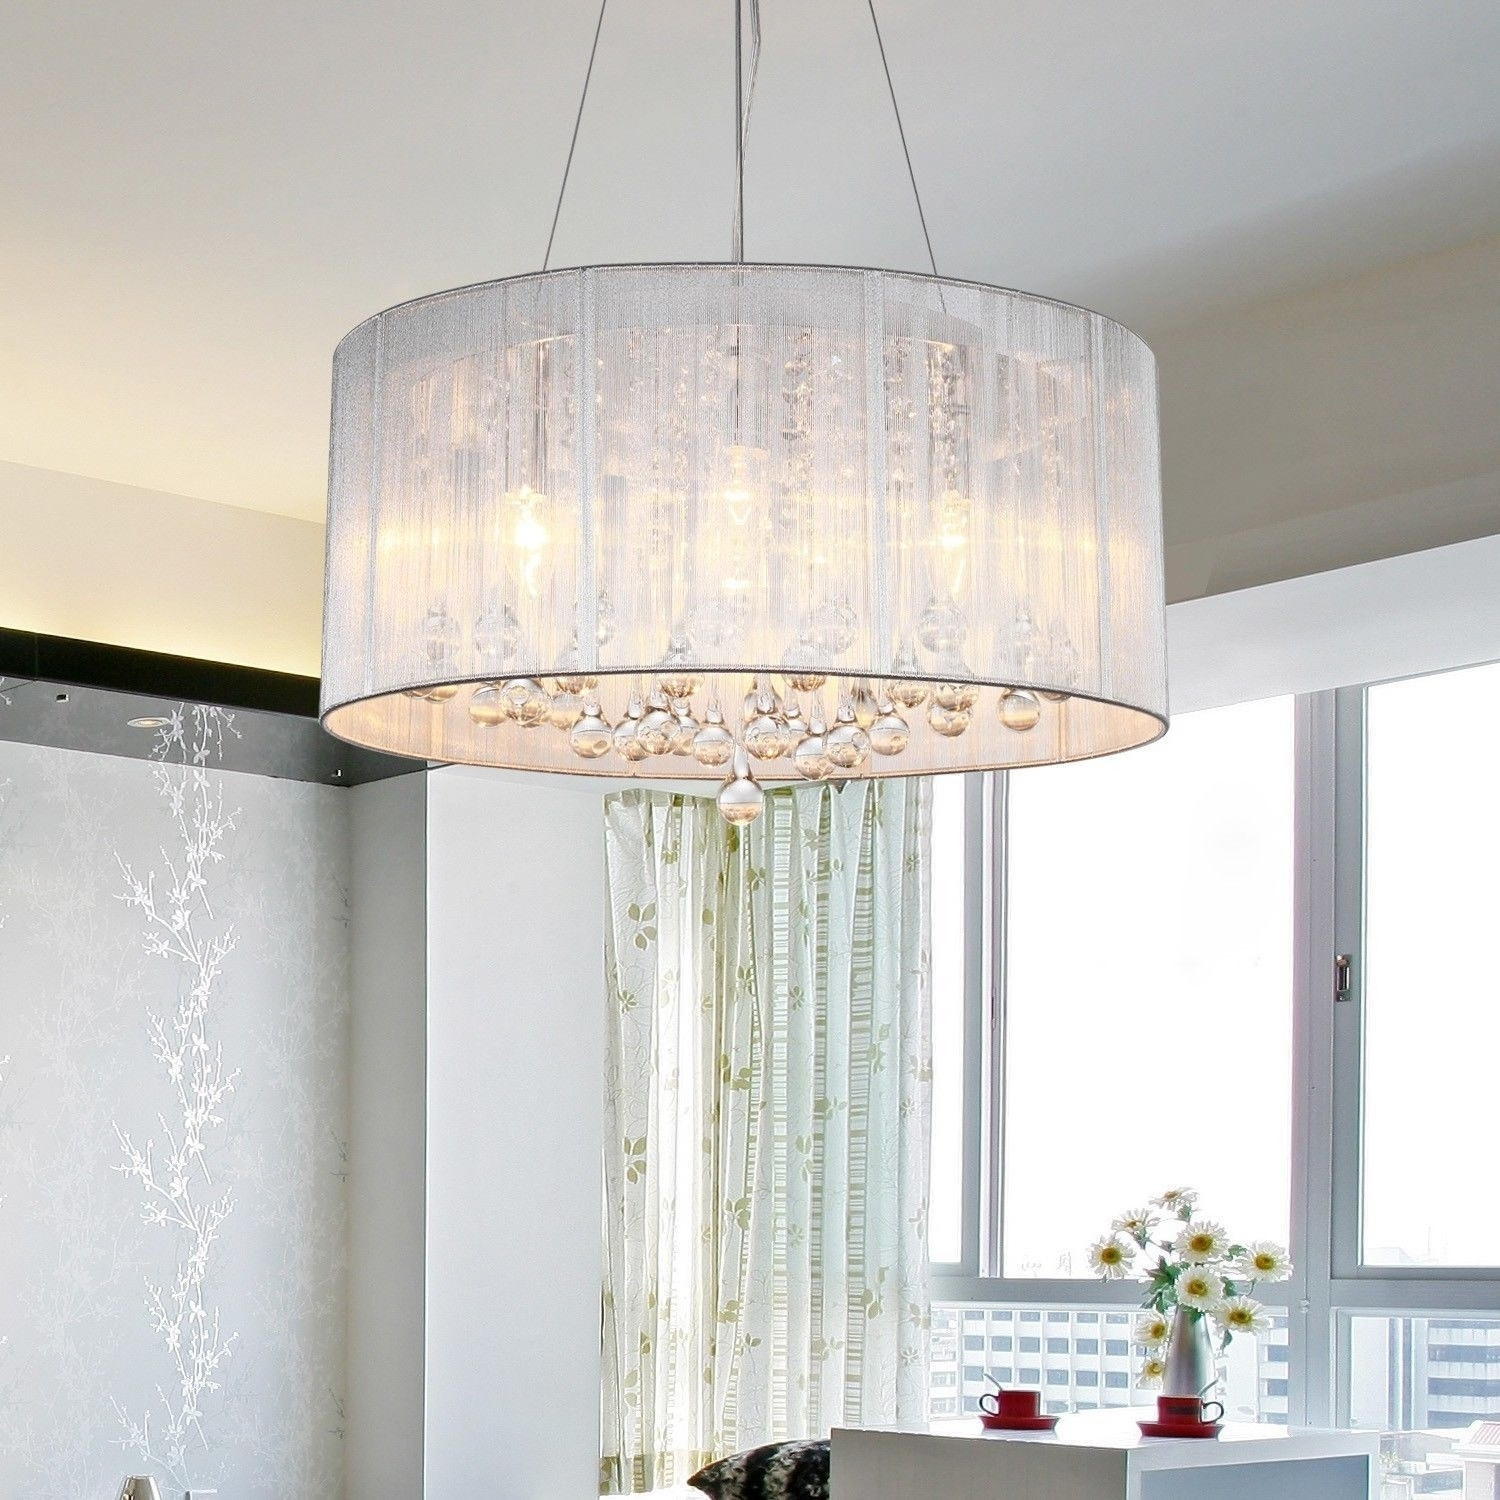 Latest Lampshade Chandeliers Inside Lamp Shades For Chandeliers Small : Lamp World (View 13 of 20)